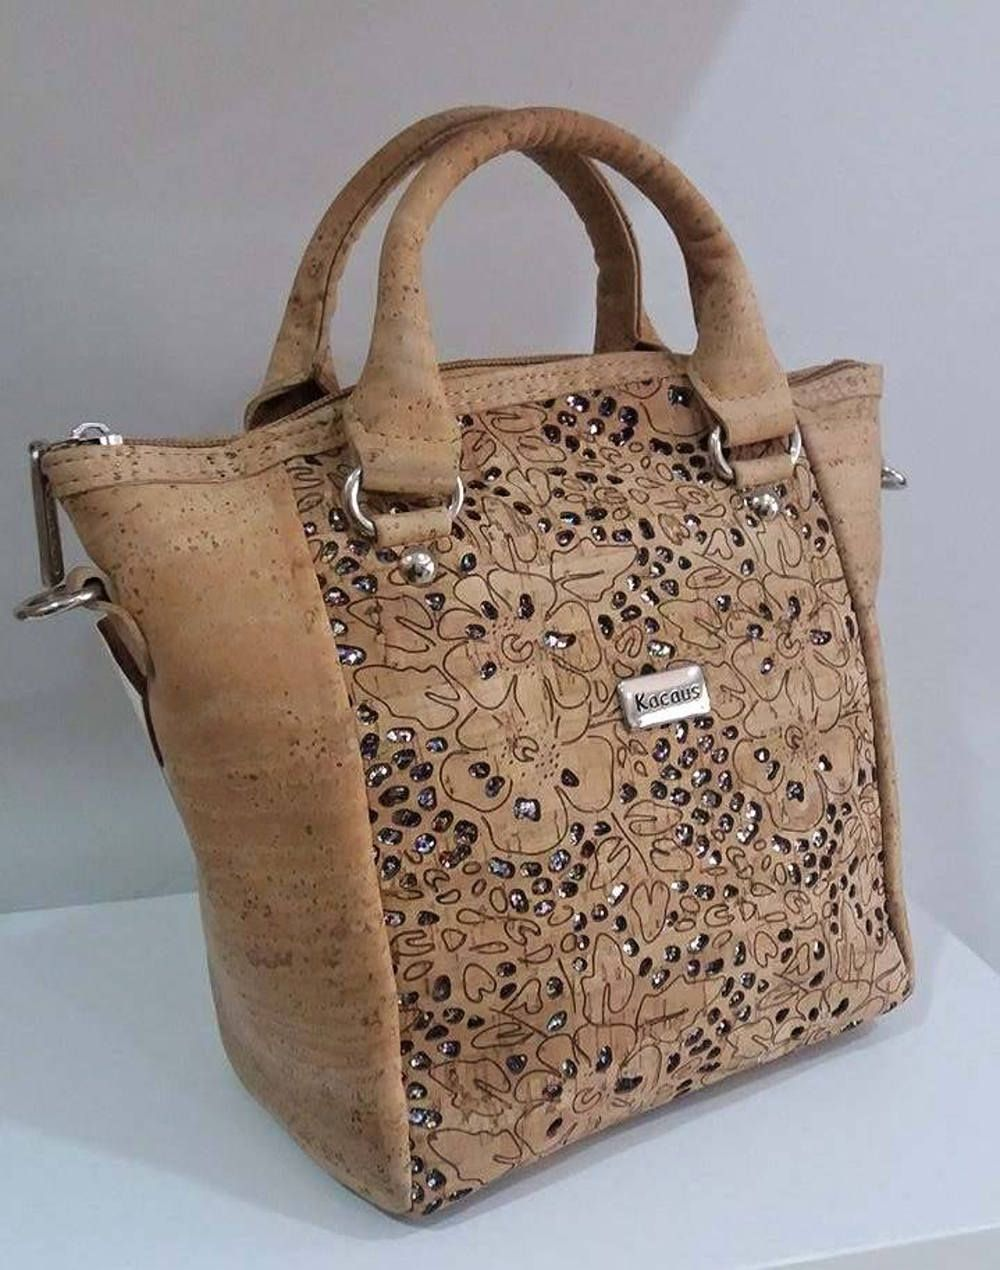 b87891c66f9c Cork Handbag - Fine Leather Cork Bag - Natural Cork Purse Eco-friendly  material by Alemishop on Etsy